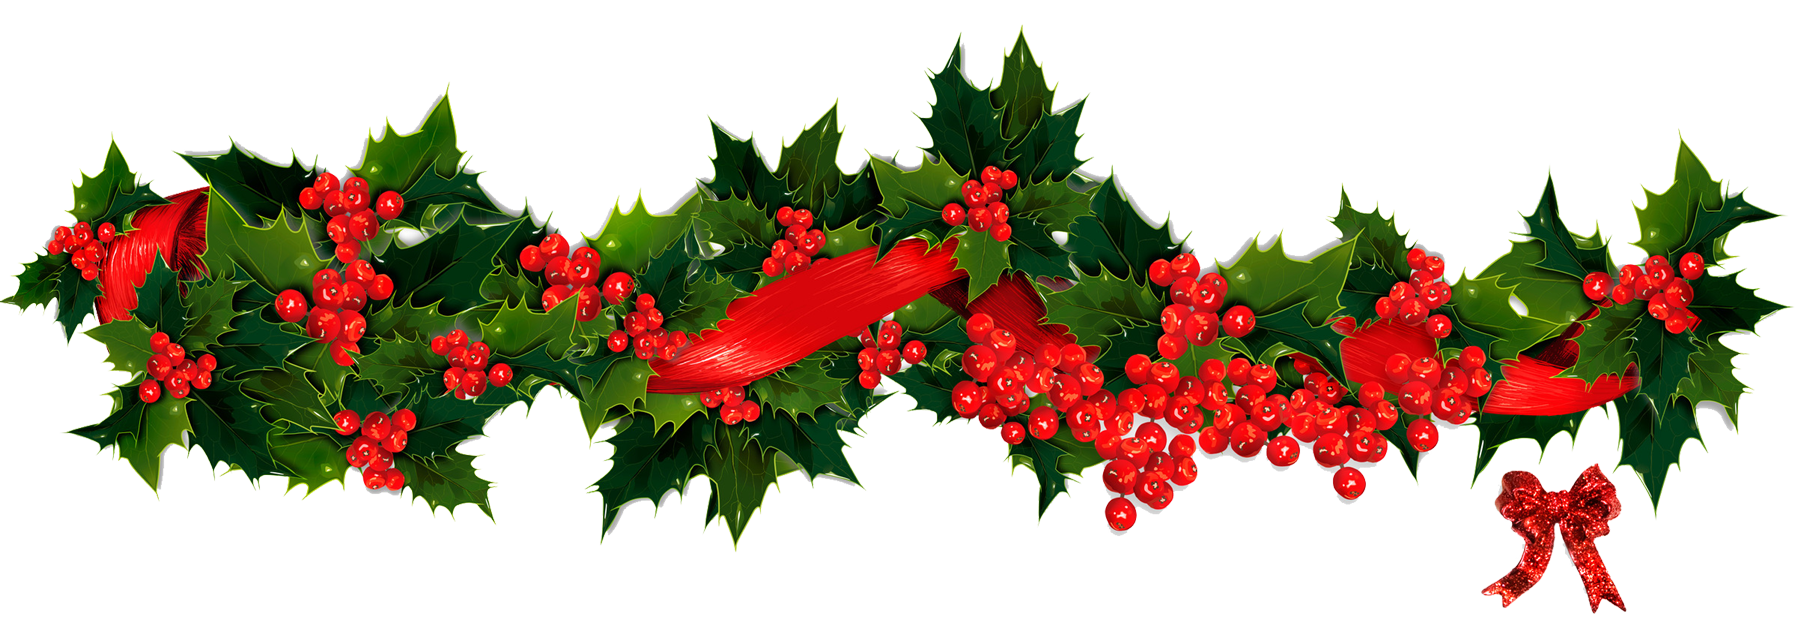 Holly garland png. Christmas images free download